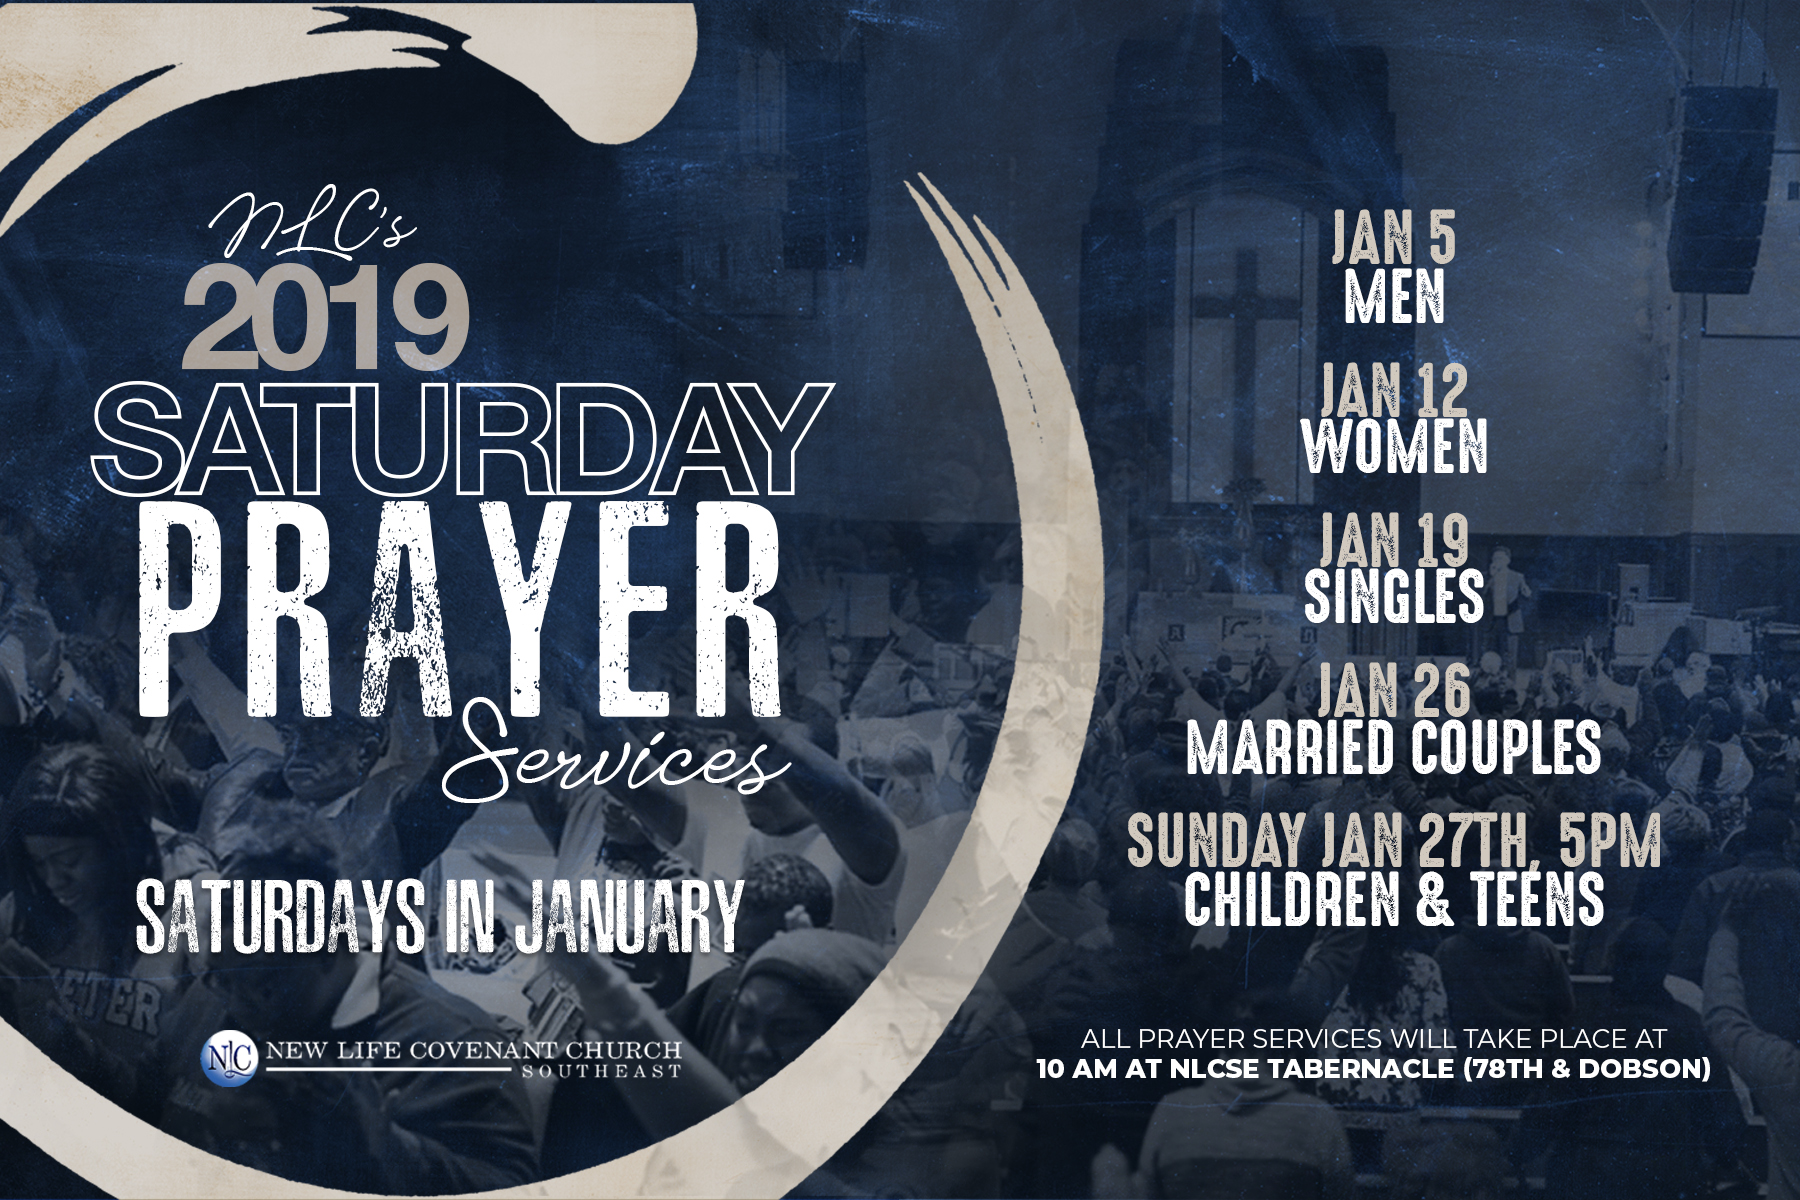 2019 Saturday Prayer Postcard (flattened).jpg